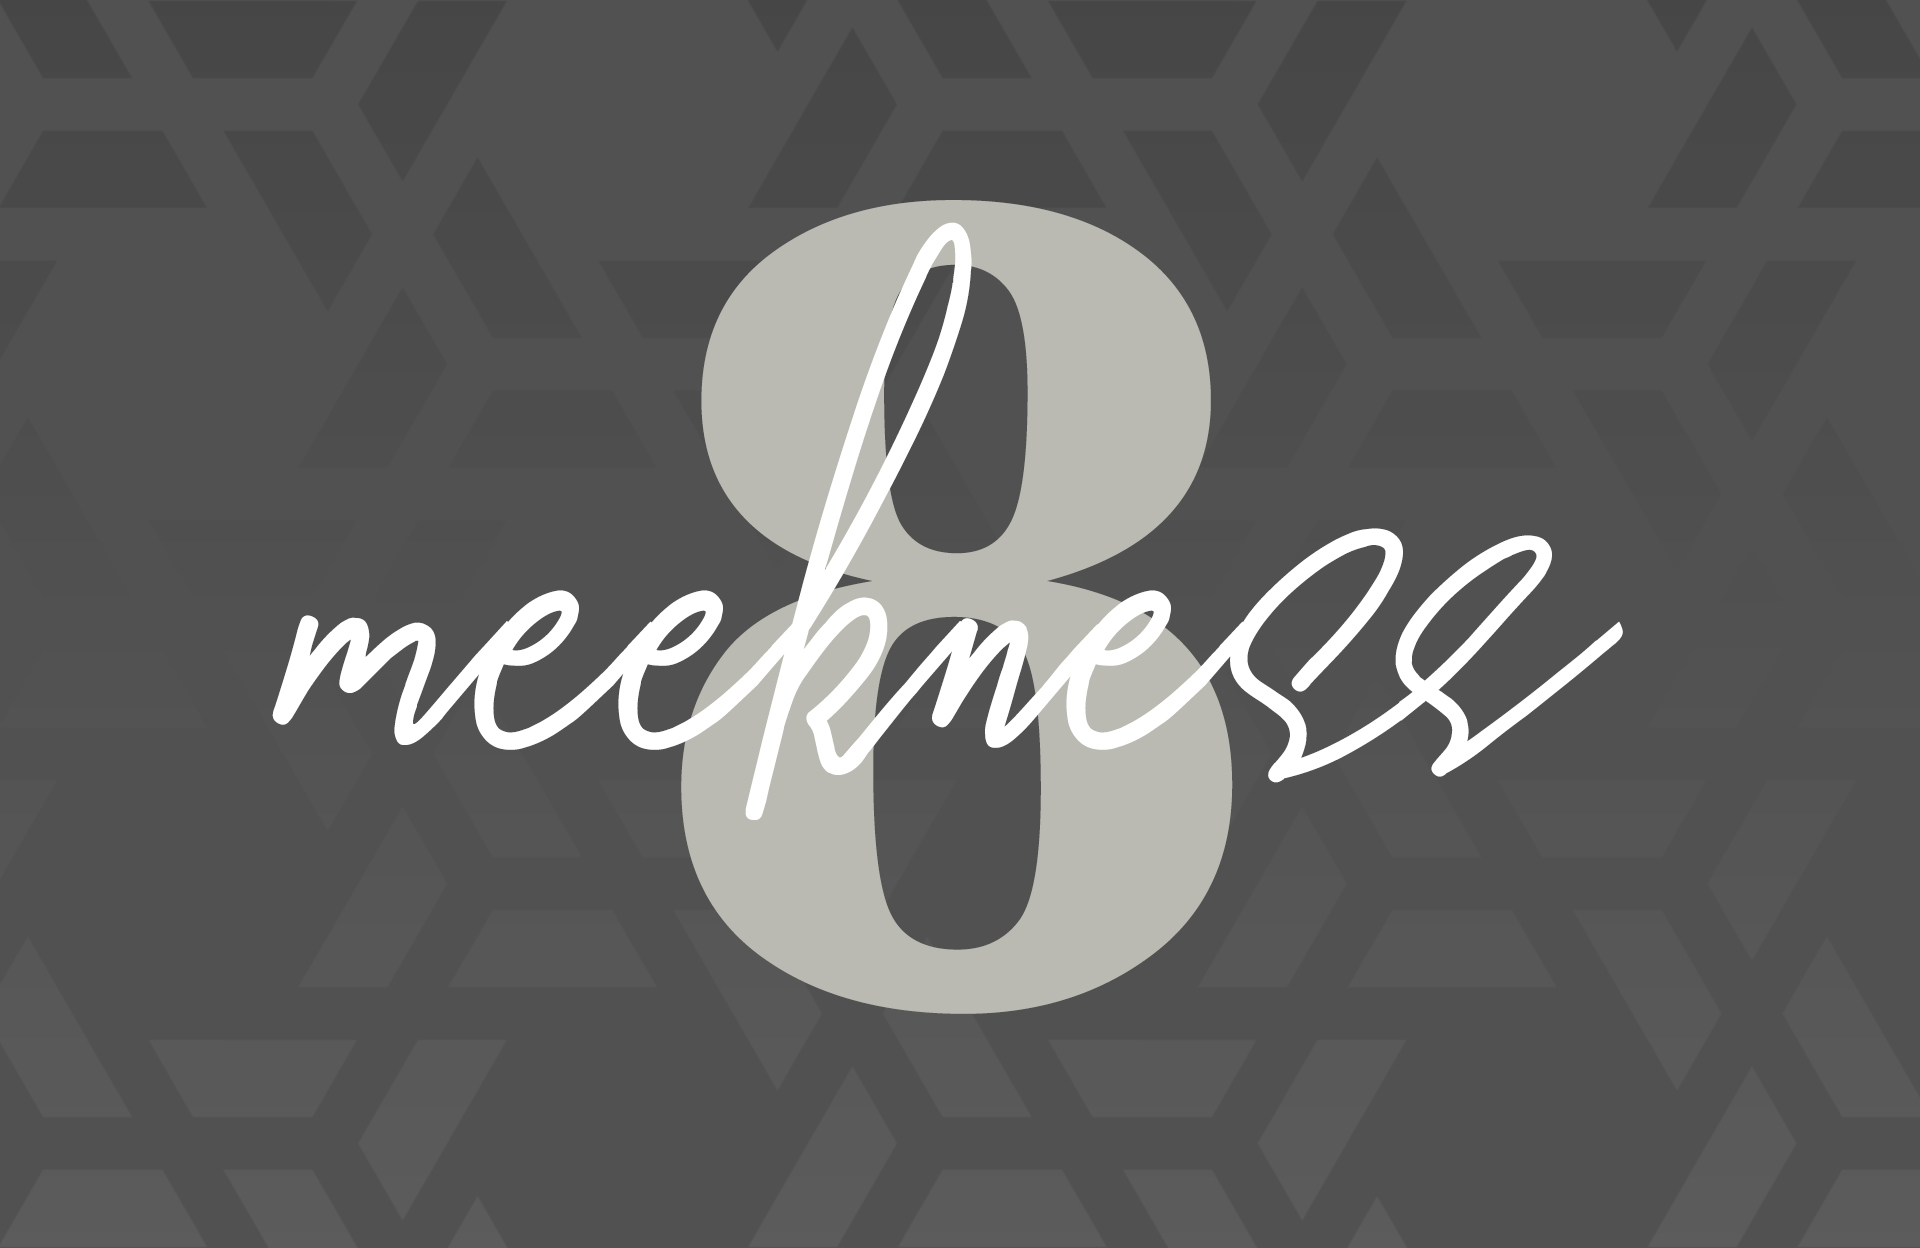 Day Eight: Meekness